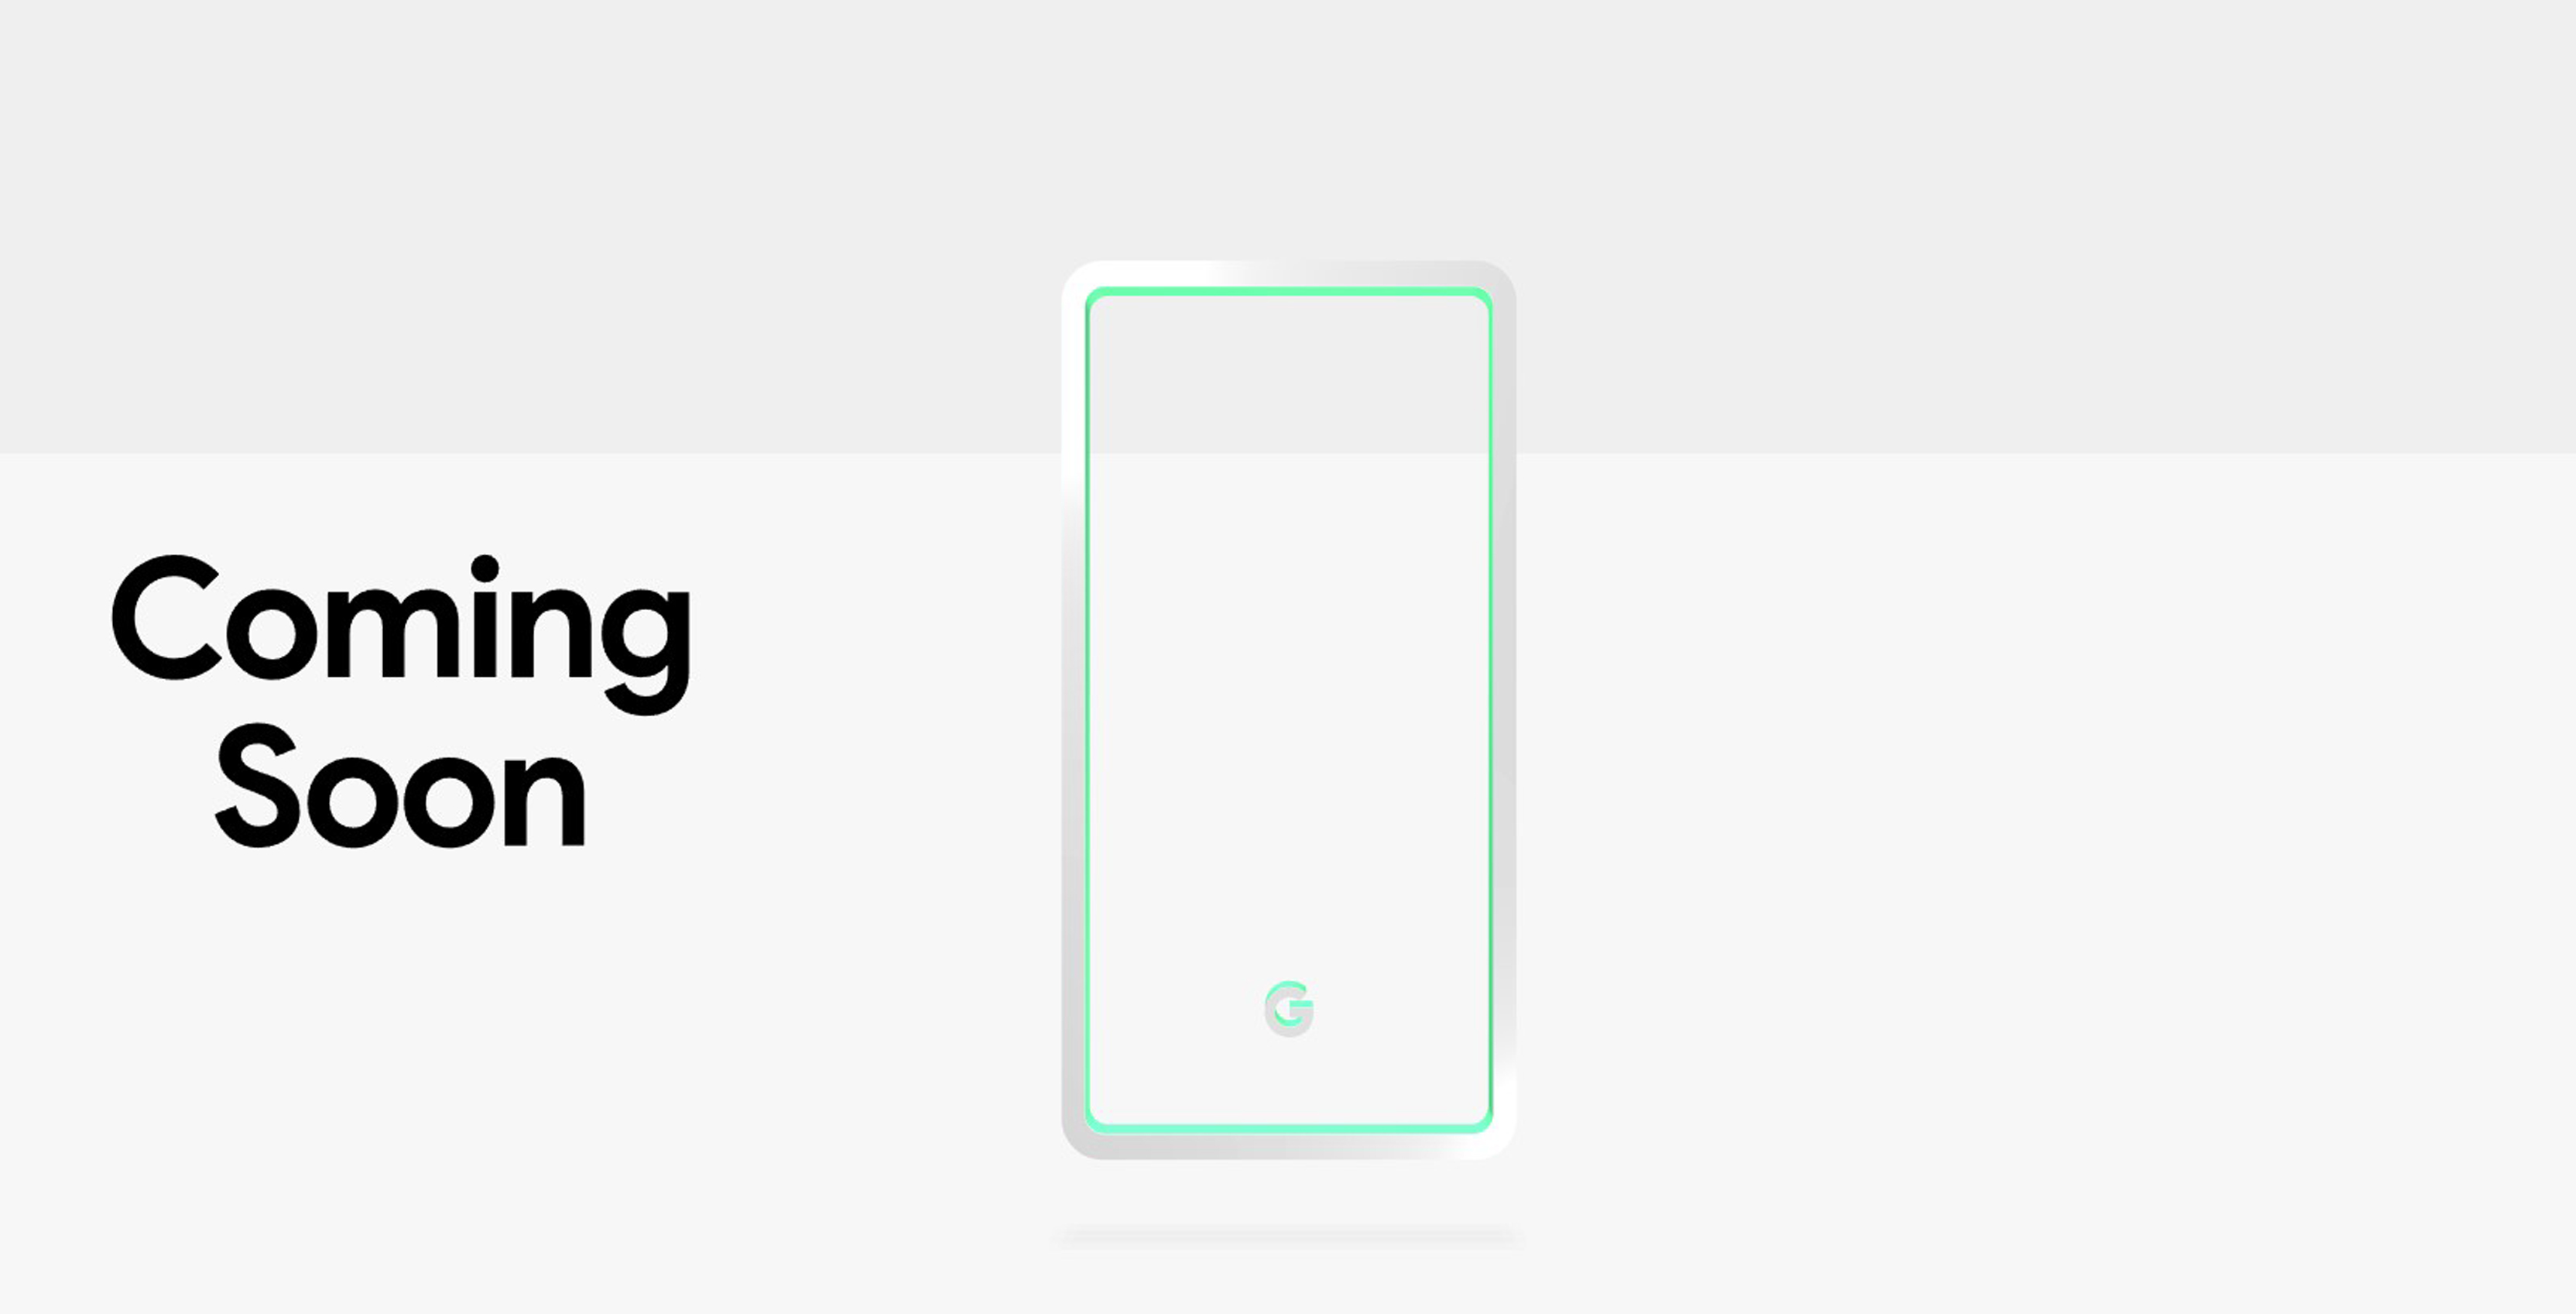 Google's Japanese Pixel teaser website